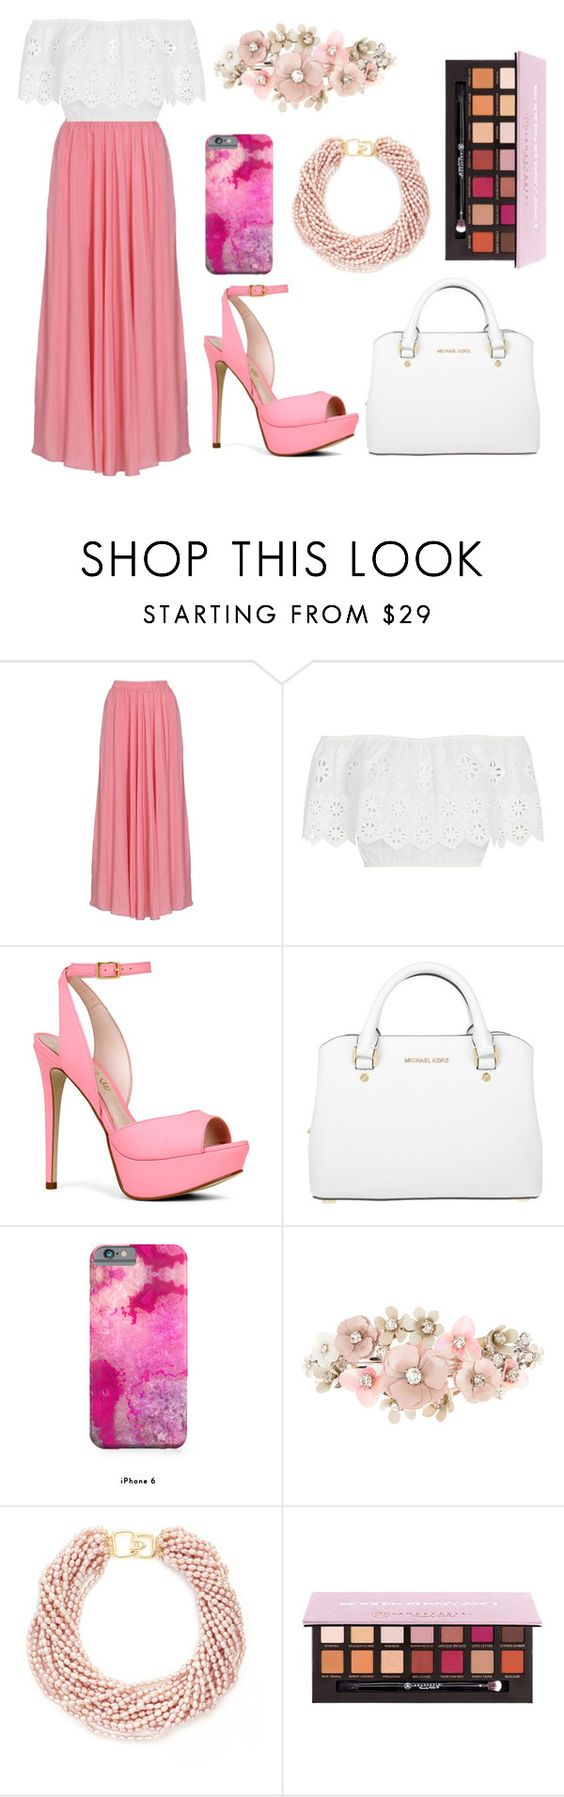 """""""Untitled #192"""" by co-co-setters ❤ liked on Polyvore featuring Miguelina, ALDO, Michael Kors, Accessorize, Kenneth Jay Lane and Anastasia Beverly Hills"""